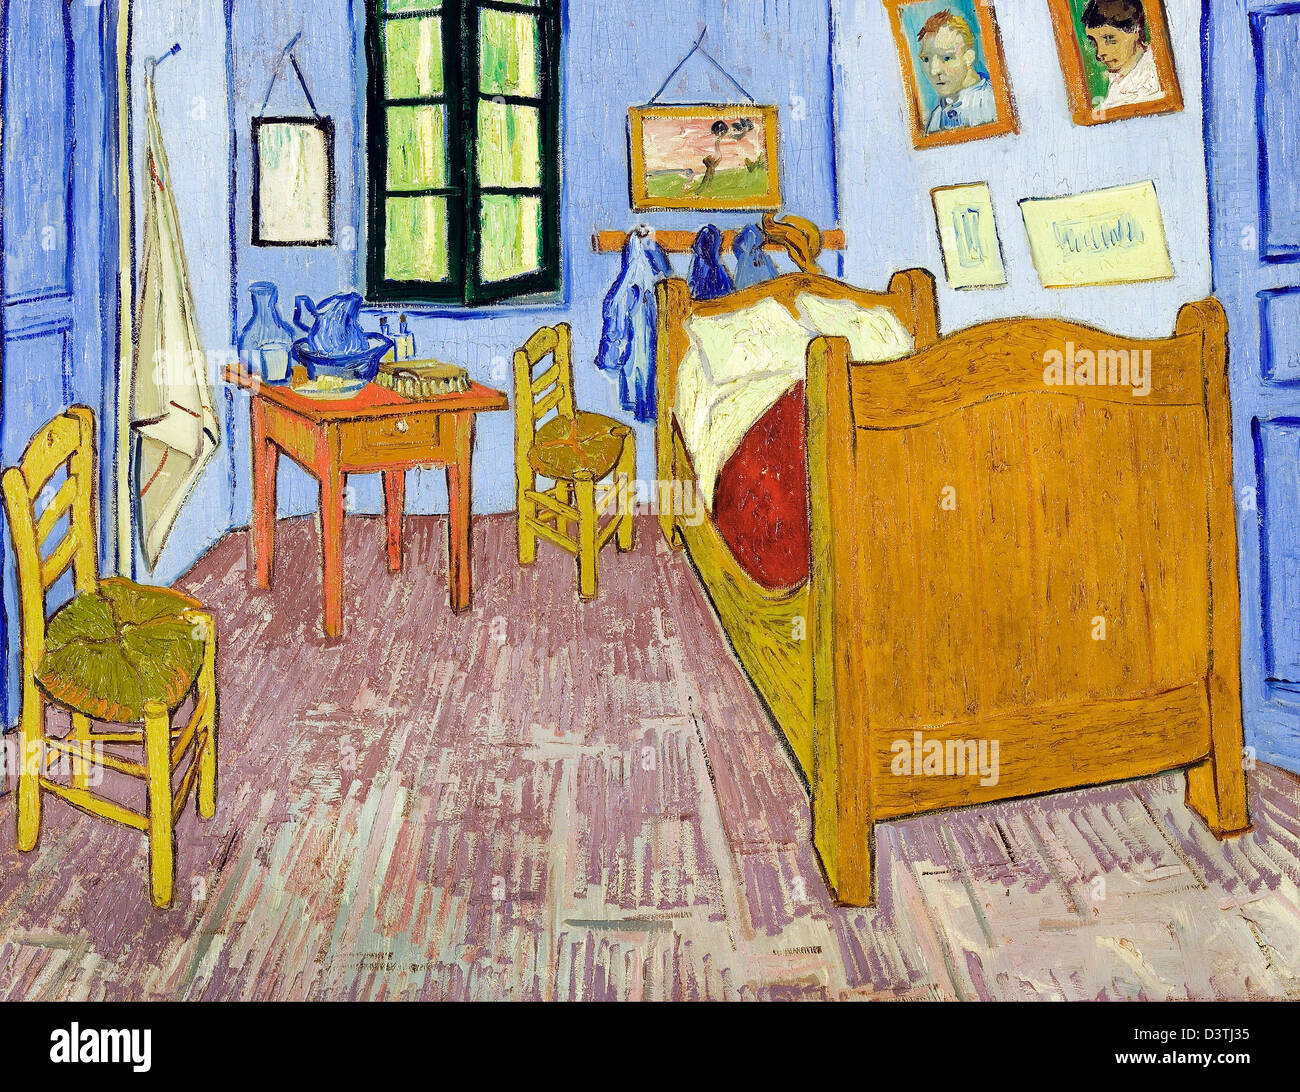 vincent van gogh van goghs schlafzimmer in arles 1889 l auf leinwand mus e d 39 orsay paris. Black Bedroom Furniture Sets. Home Design Ideas